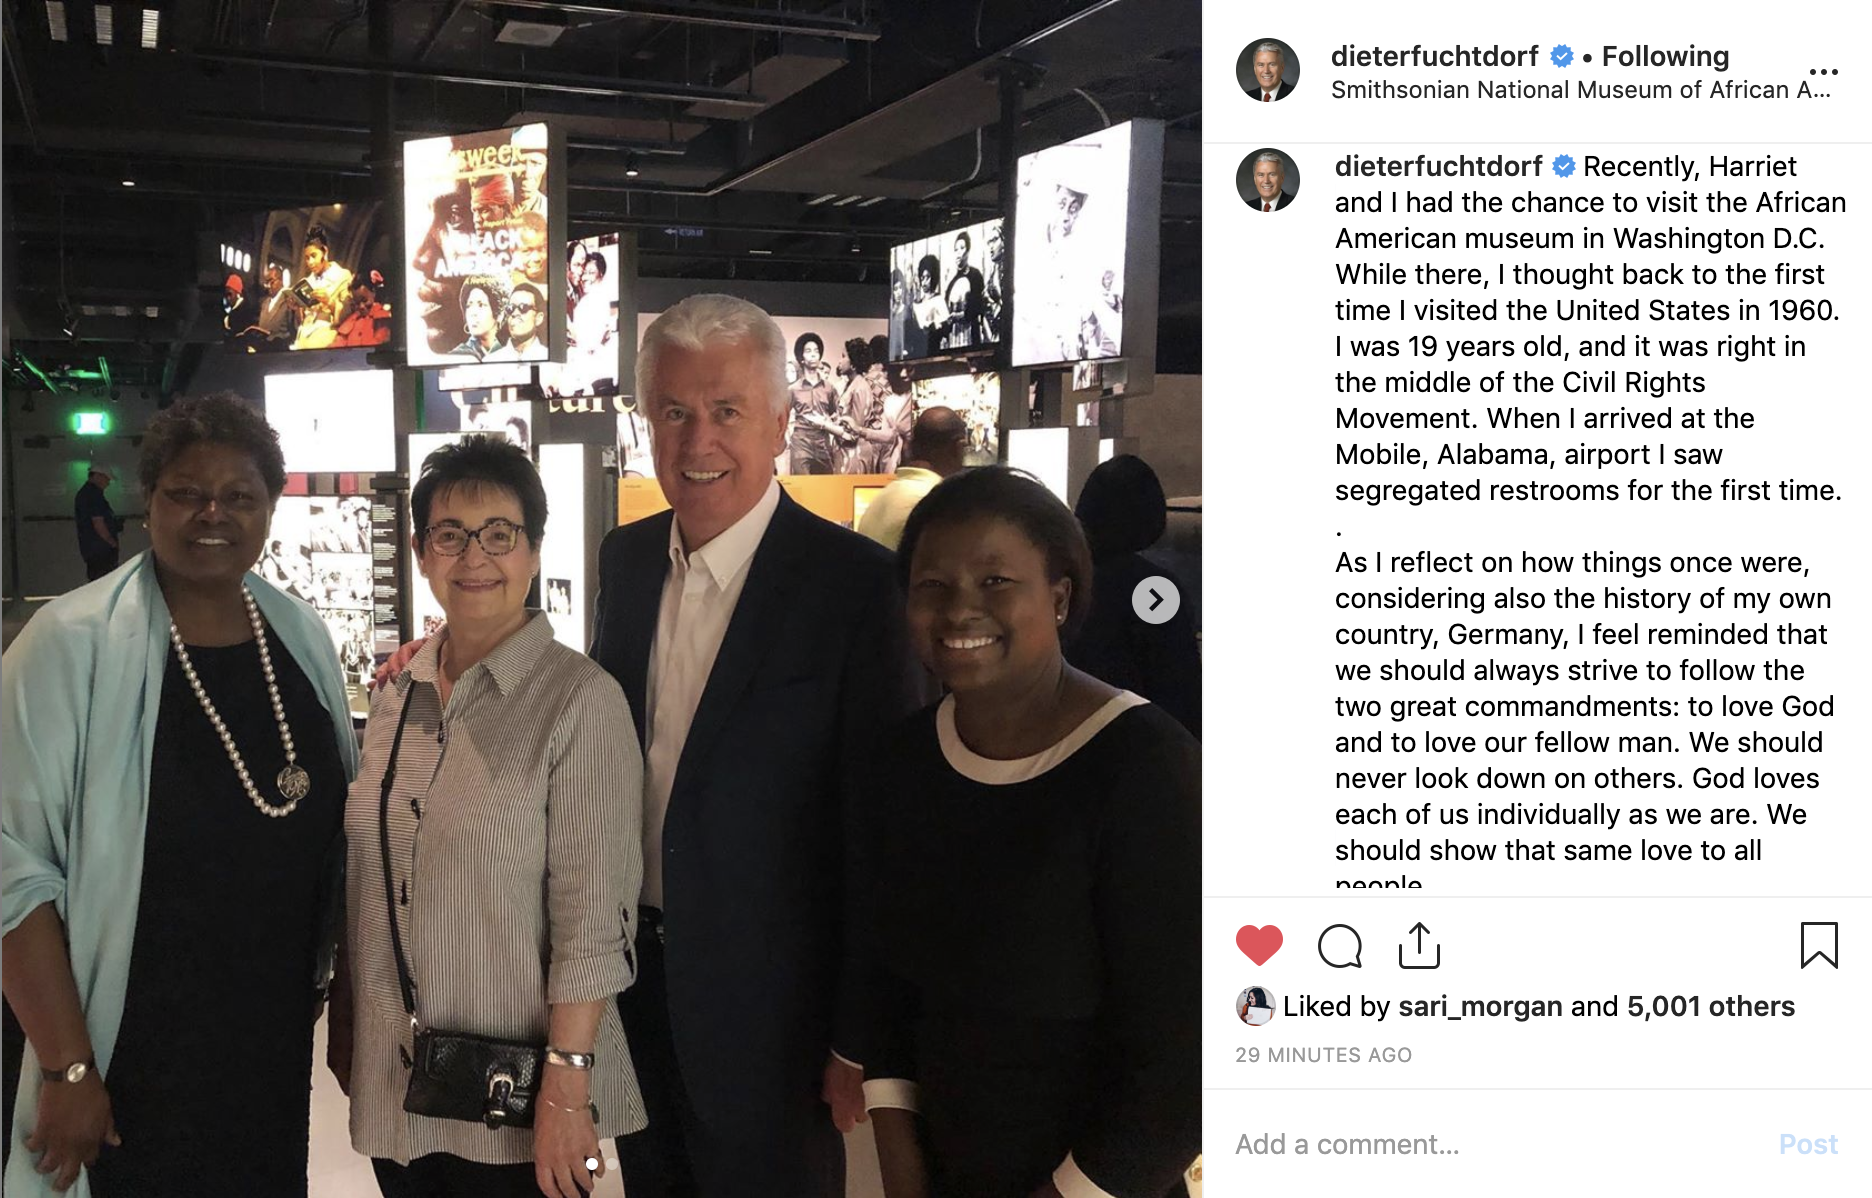 Elder Dieter F. Uchtdorf of the Quorum of the Twelve Apostles visits the National Museum of African American History and Culture with his wife, Sister Harriet Uchtdorf.